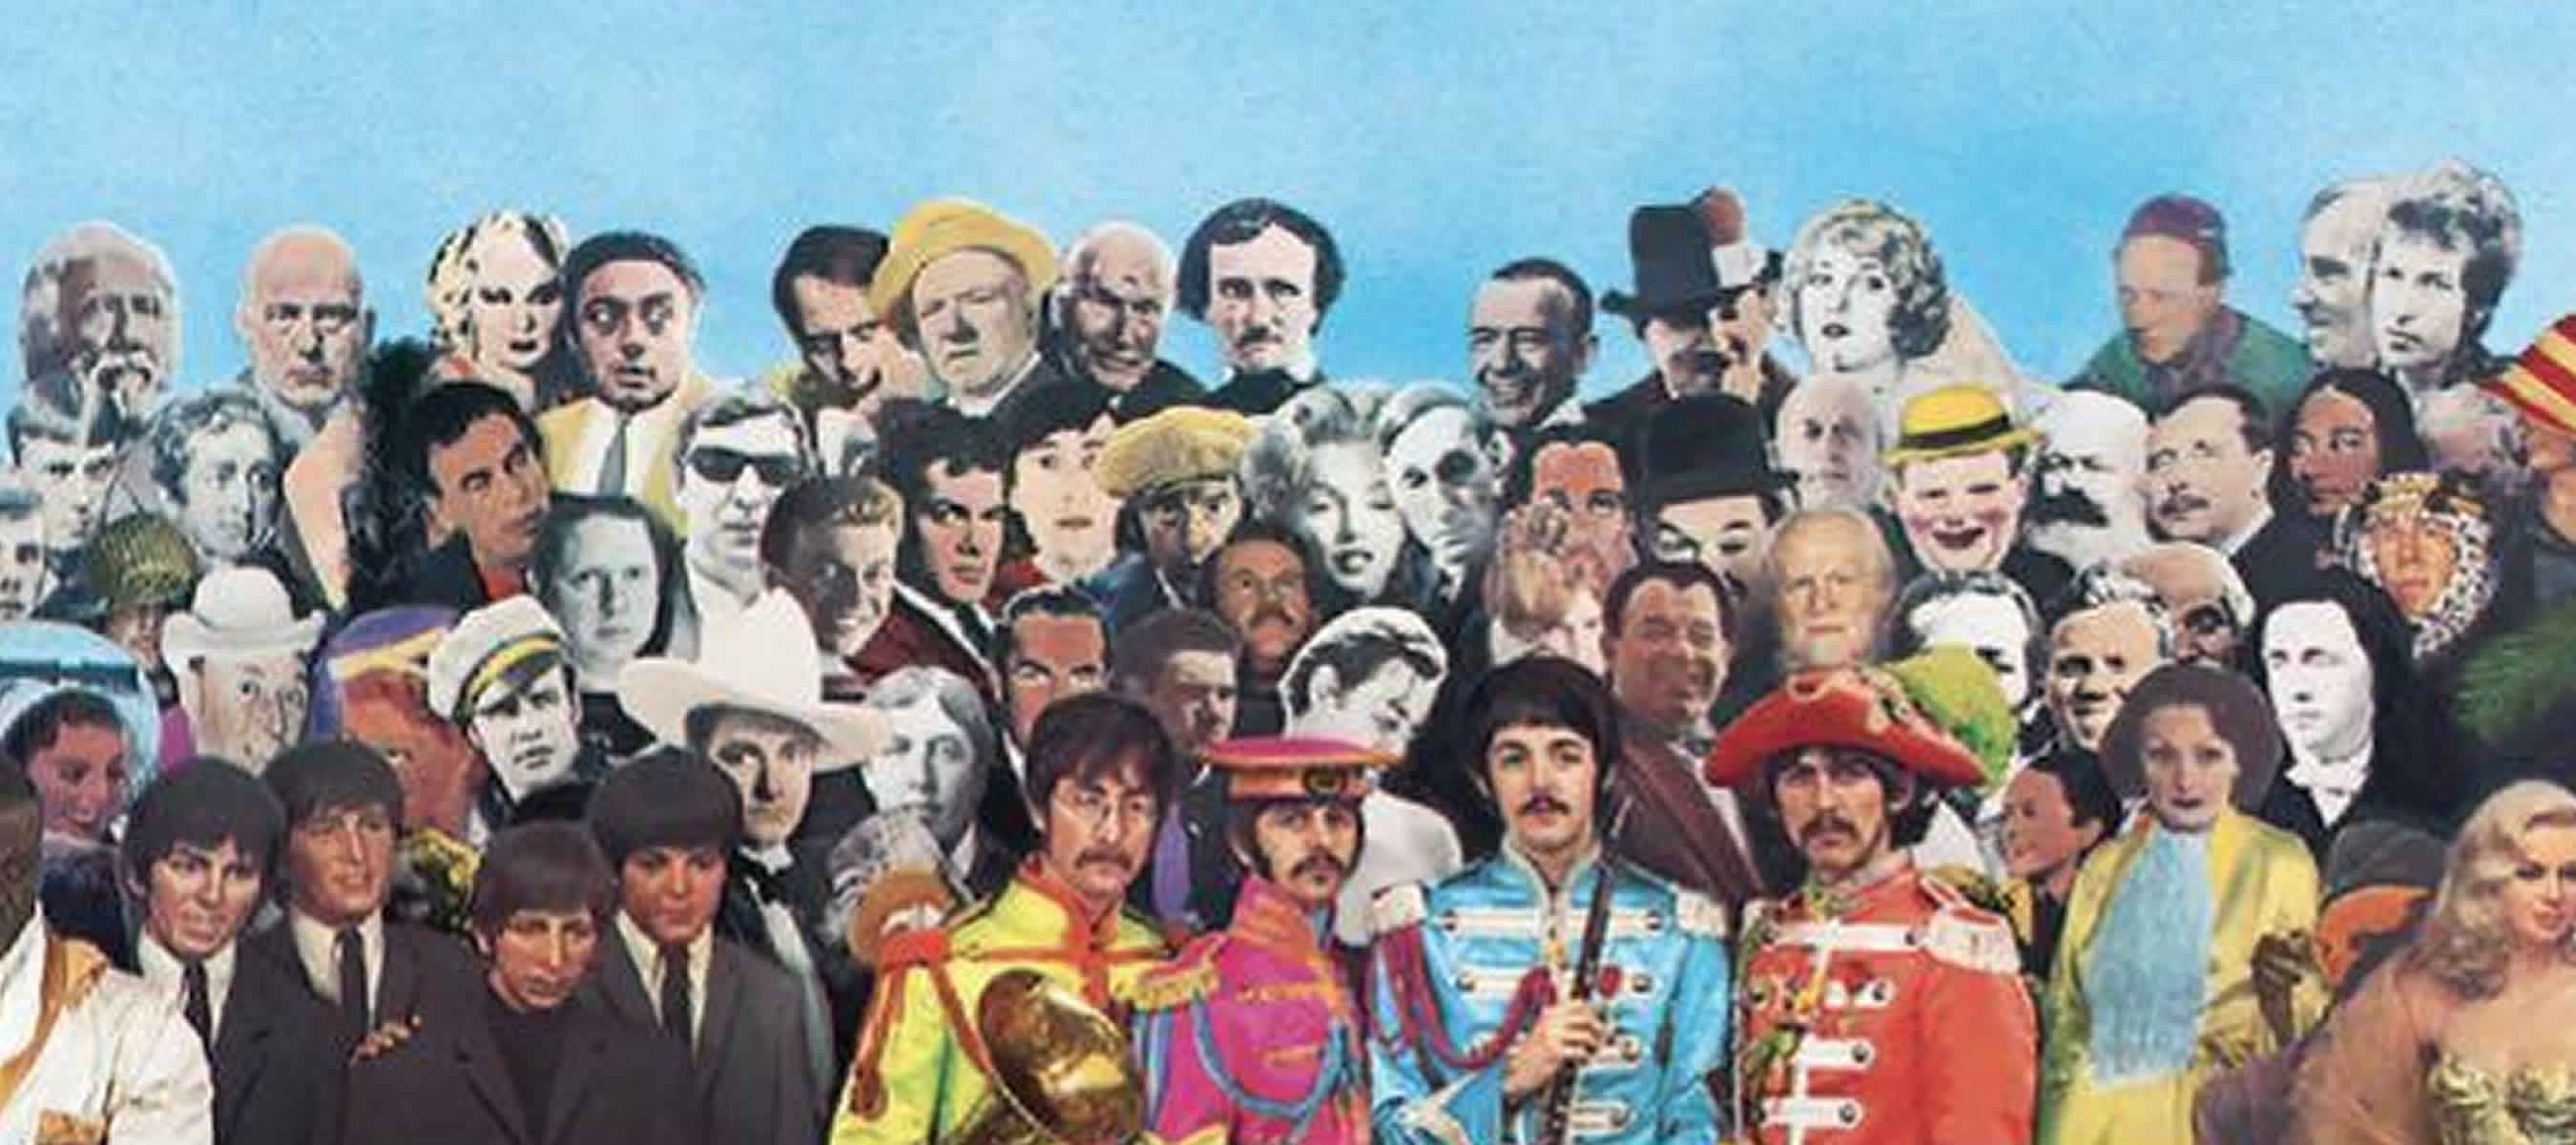 Aniversario No. 50 Sgt Pepper´s Lonely Hearts